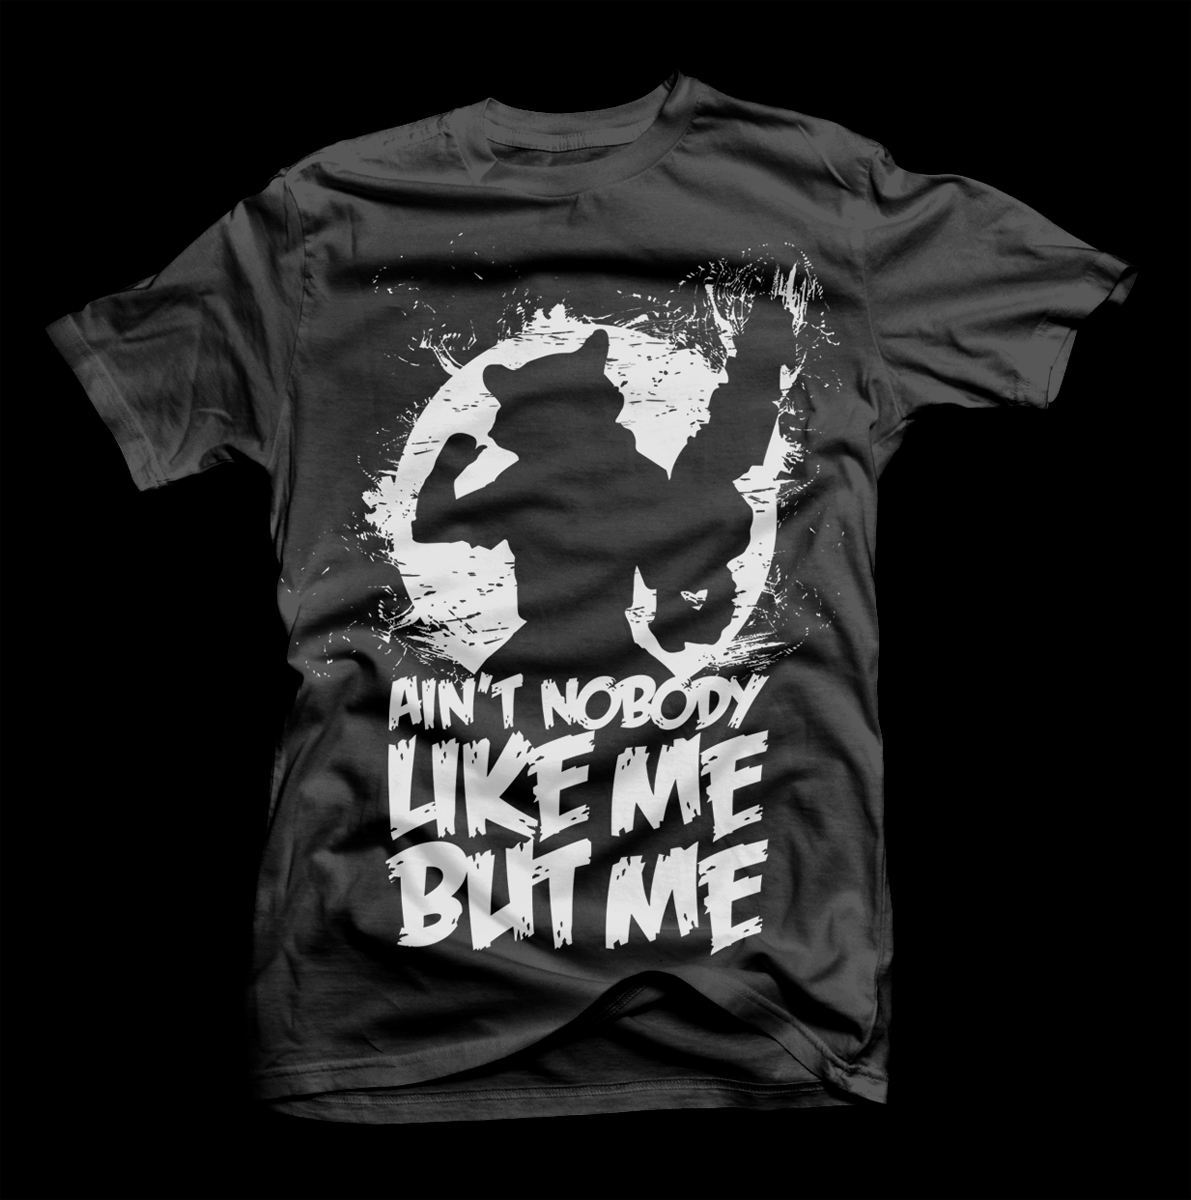 37 Bold Serious T Shirt Designs For A Business In United